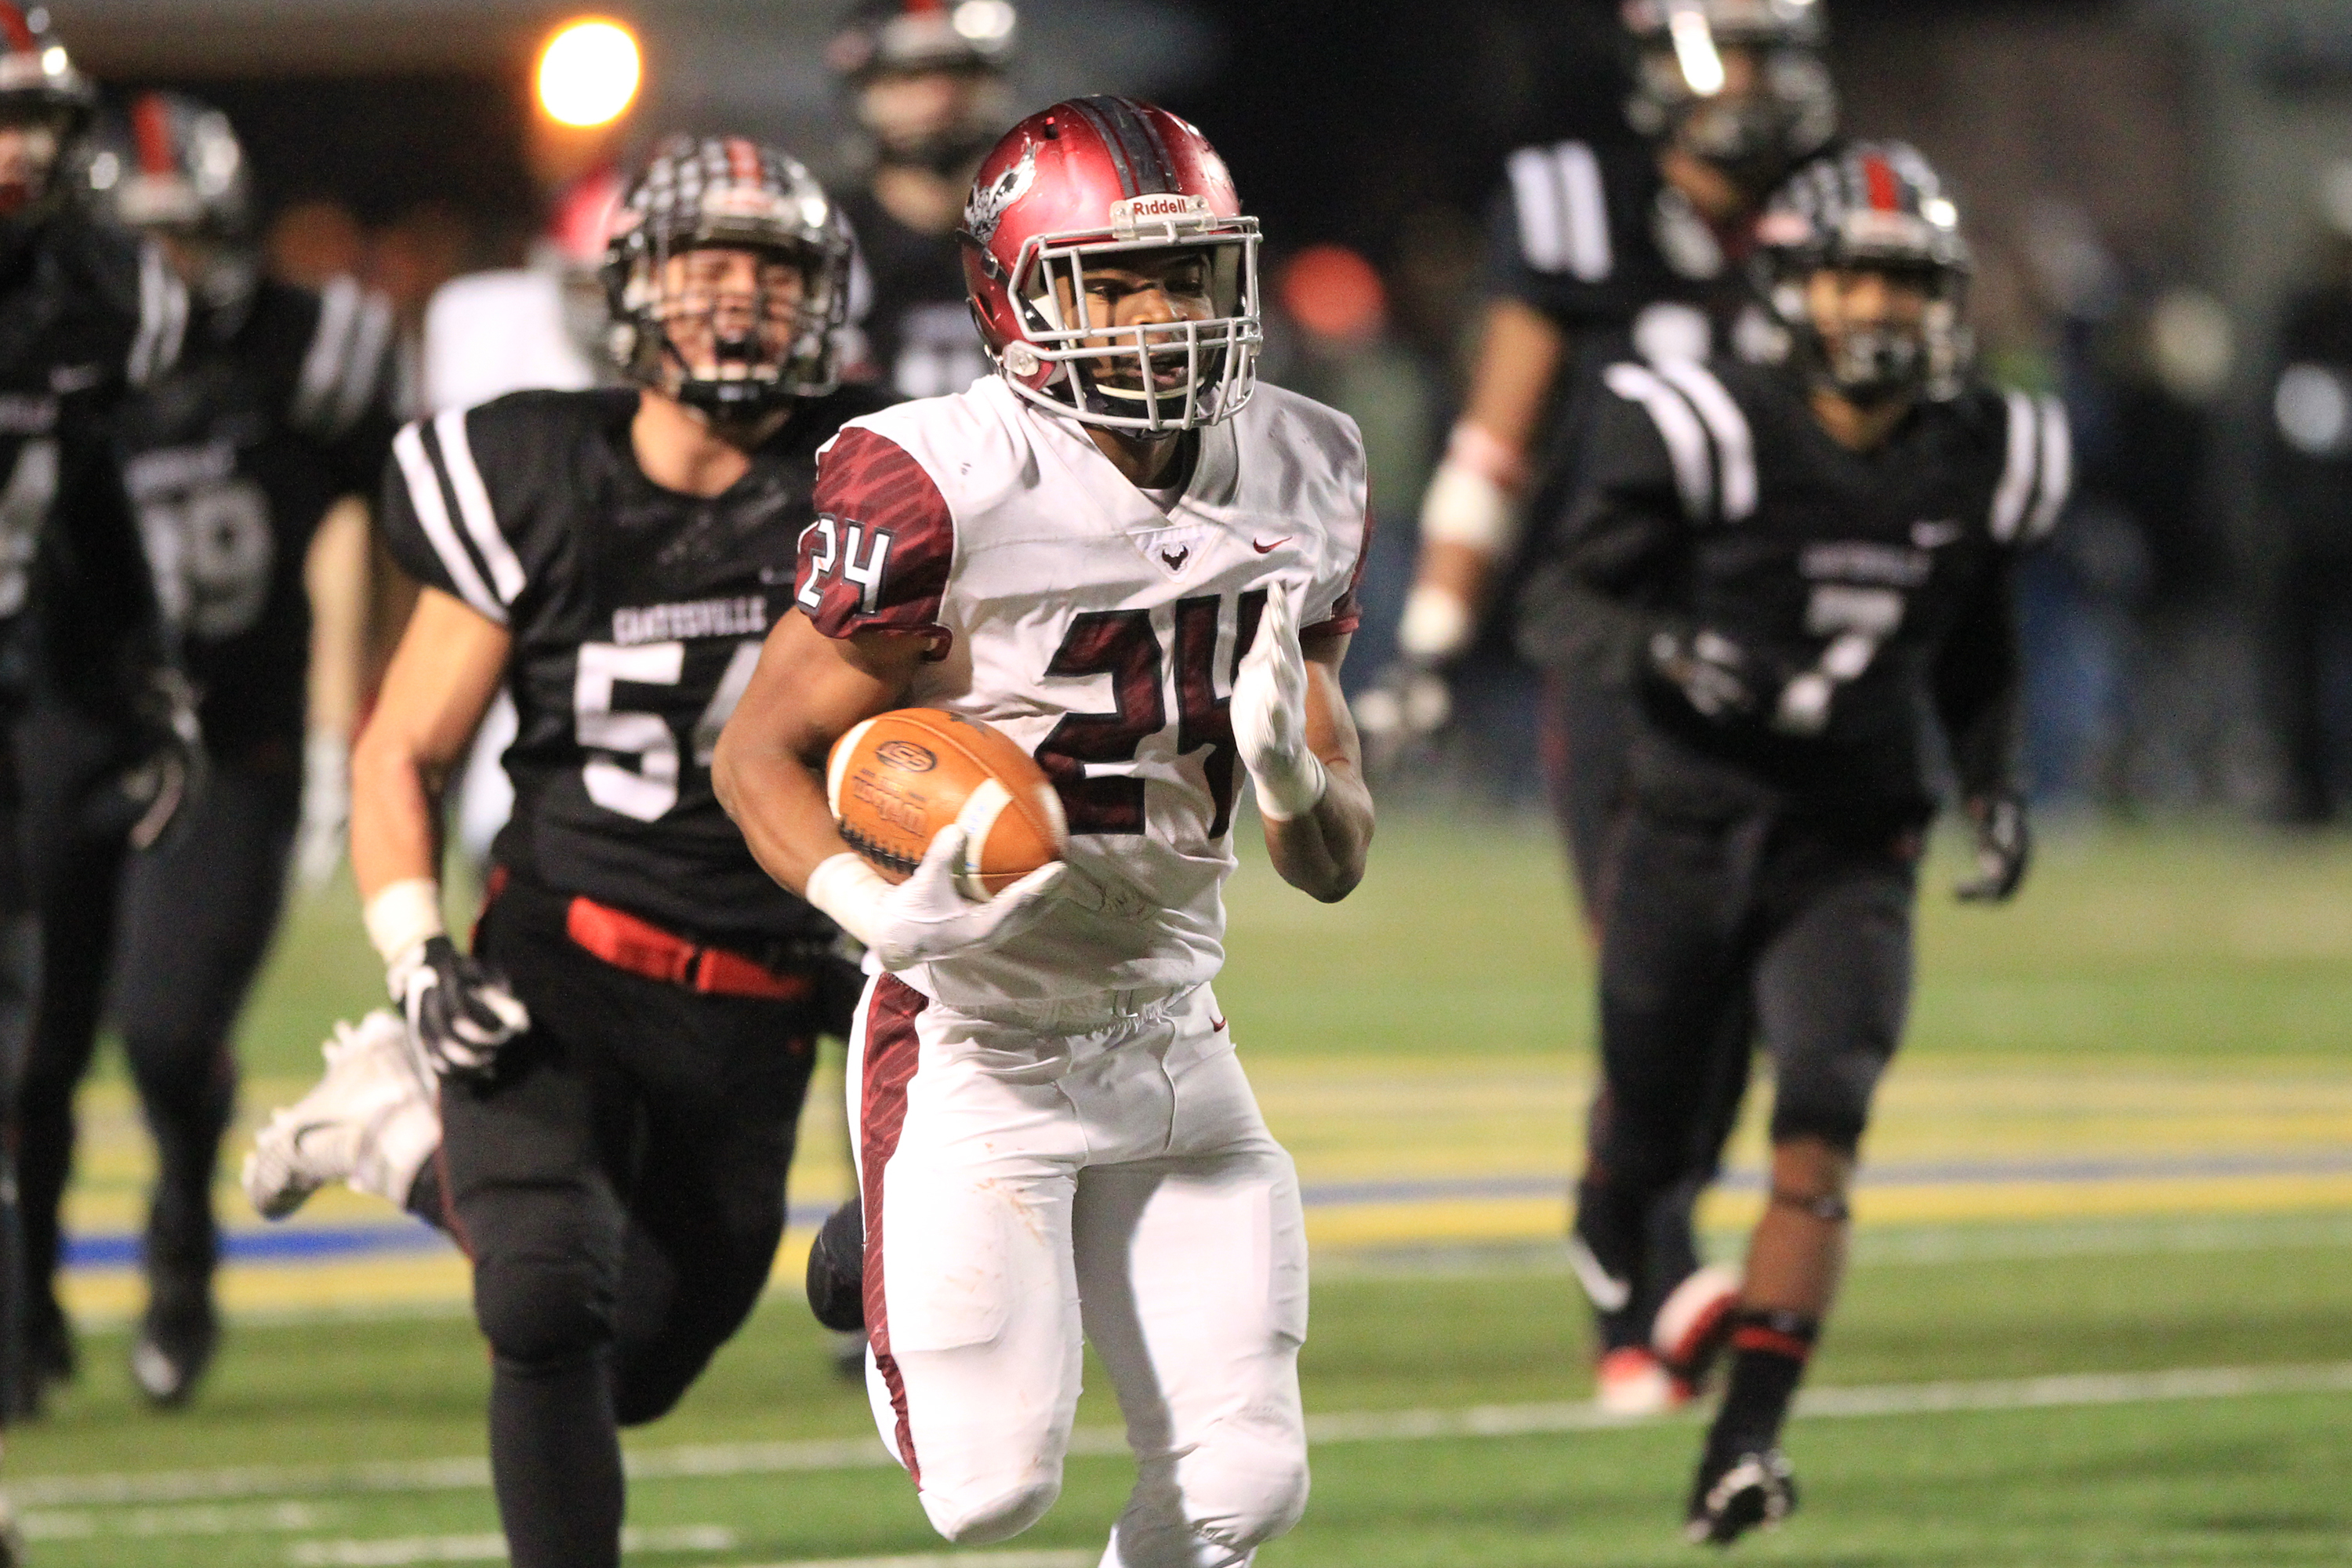 St. Joseph's Prep's Kolbe Burrell runs for a touchdown against Coatesville in last year's PIAA Class 6A semifinal playoff.